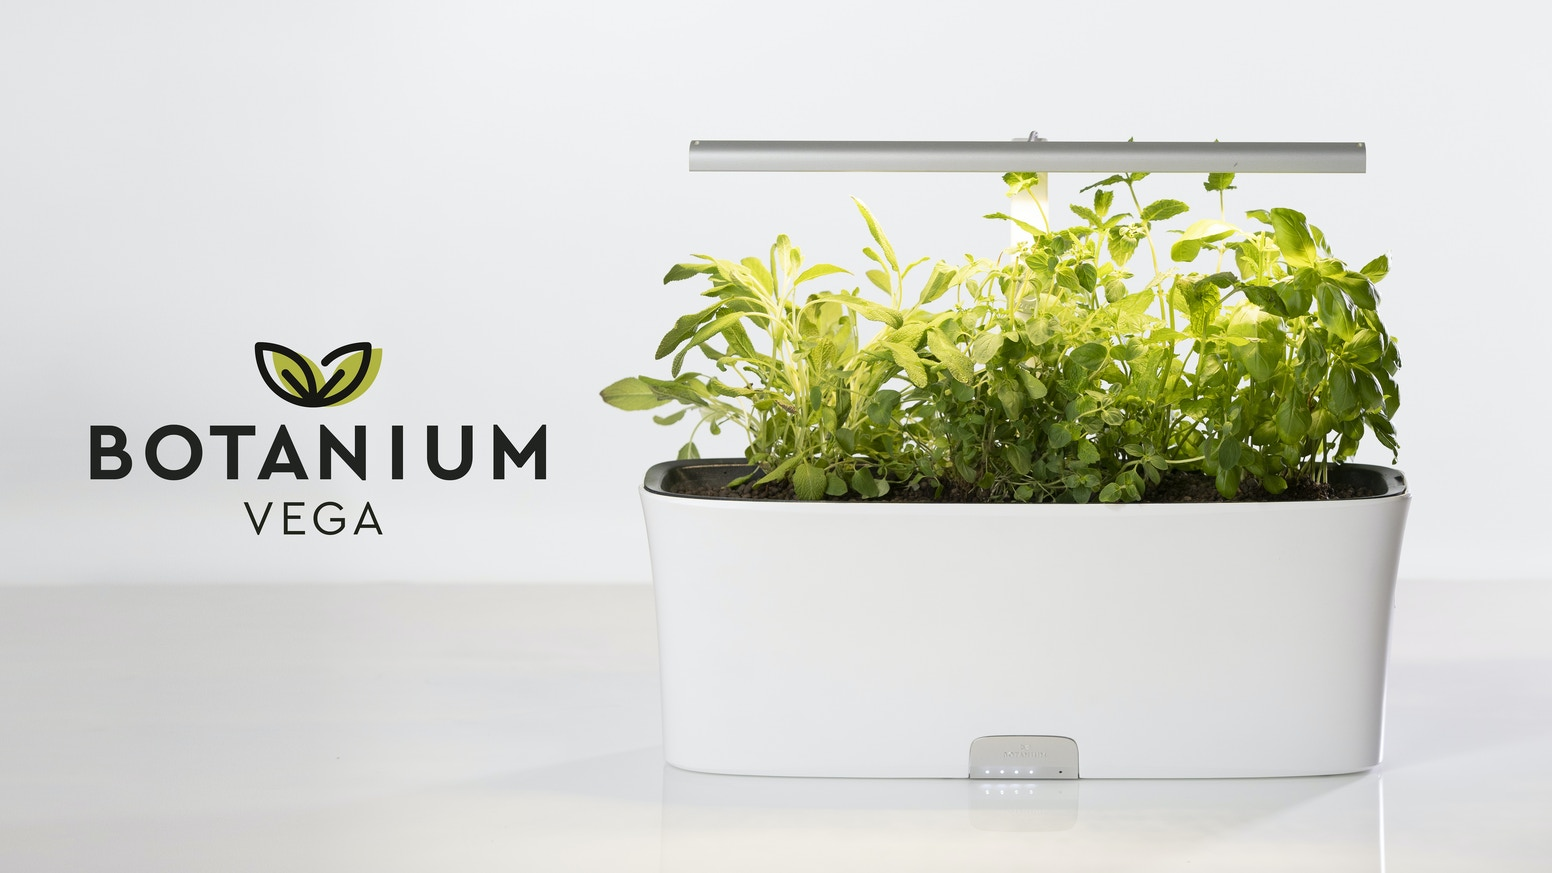 Grow edible greens easier. Featuring a long-lasting water tank, large growing space, a powerful built in lamp and app connectivity.